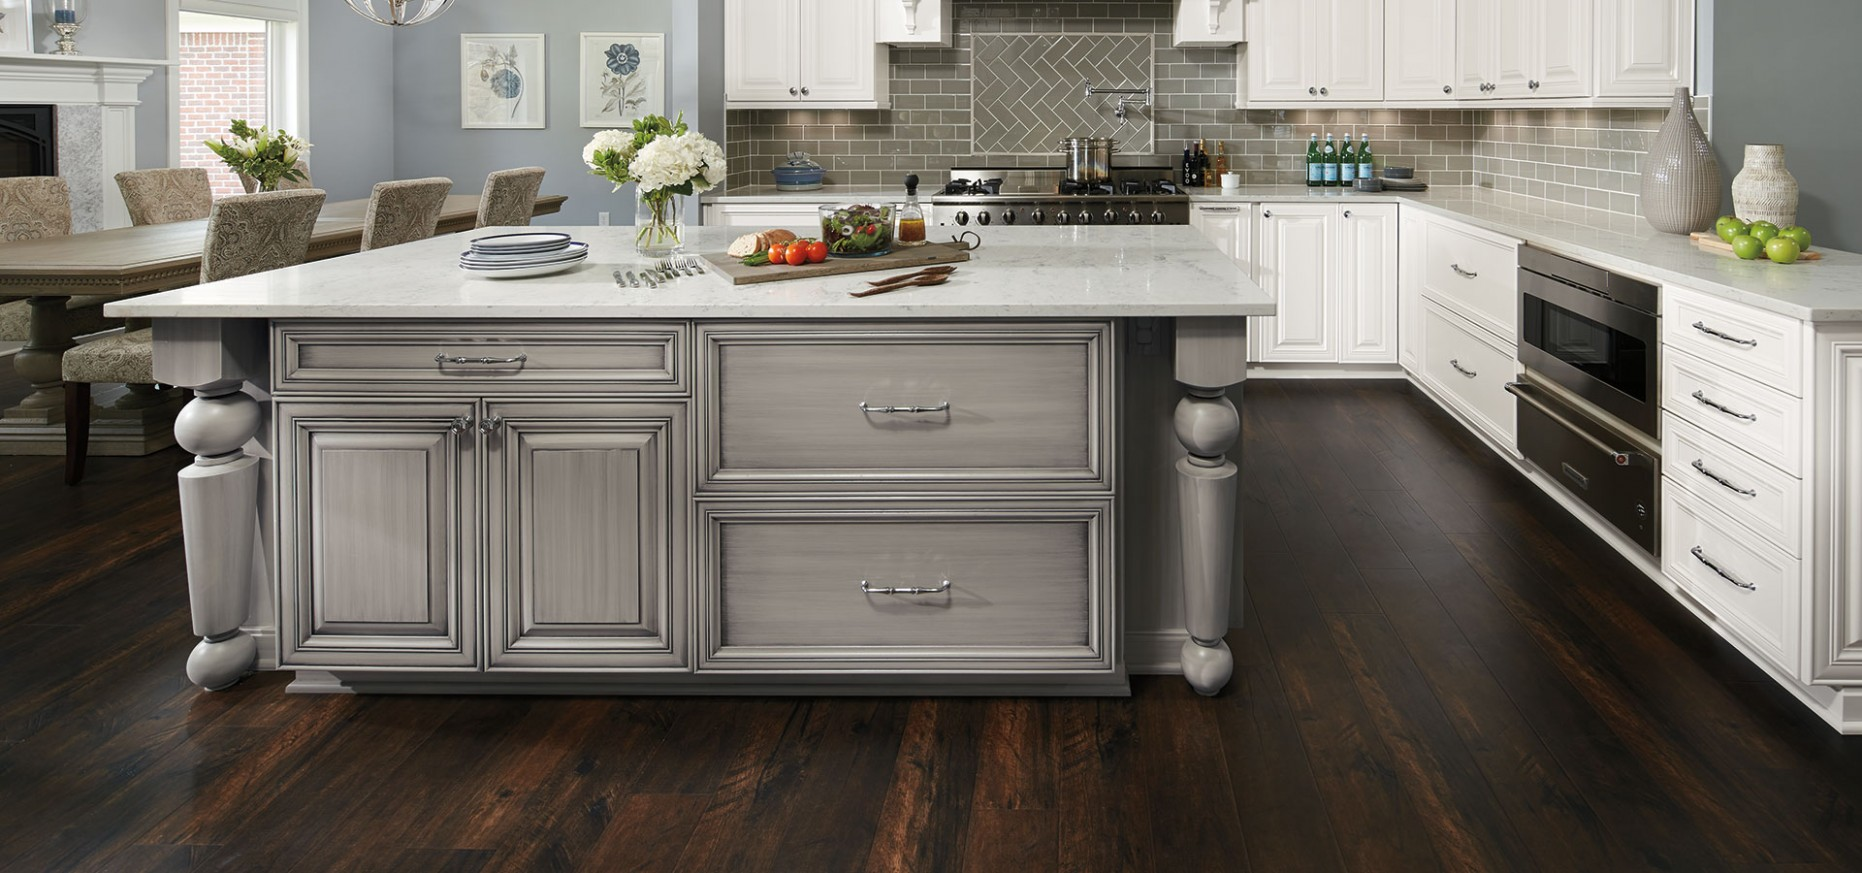 Custom Cabinets – Bathroom & Kitchen Cabinetry – Omega - Beautiful Kitchen Cabinets For Sale